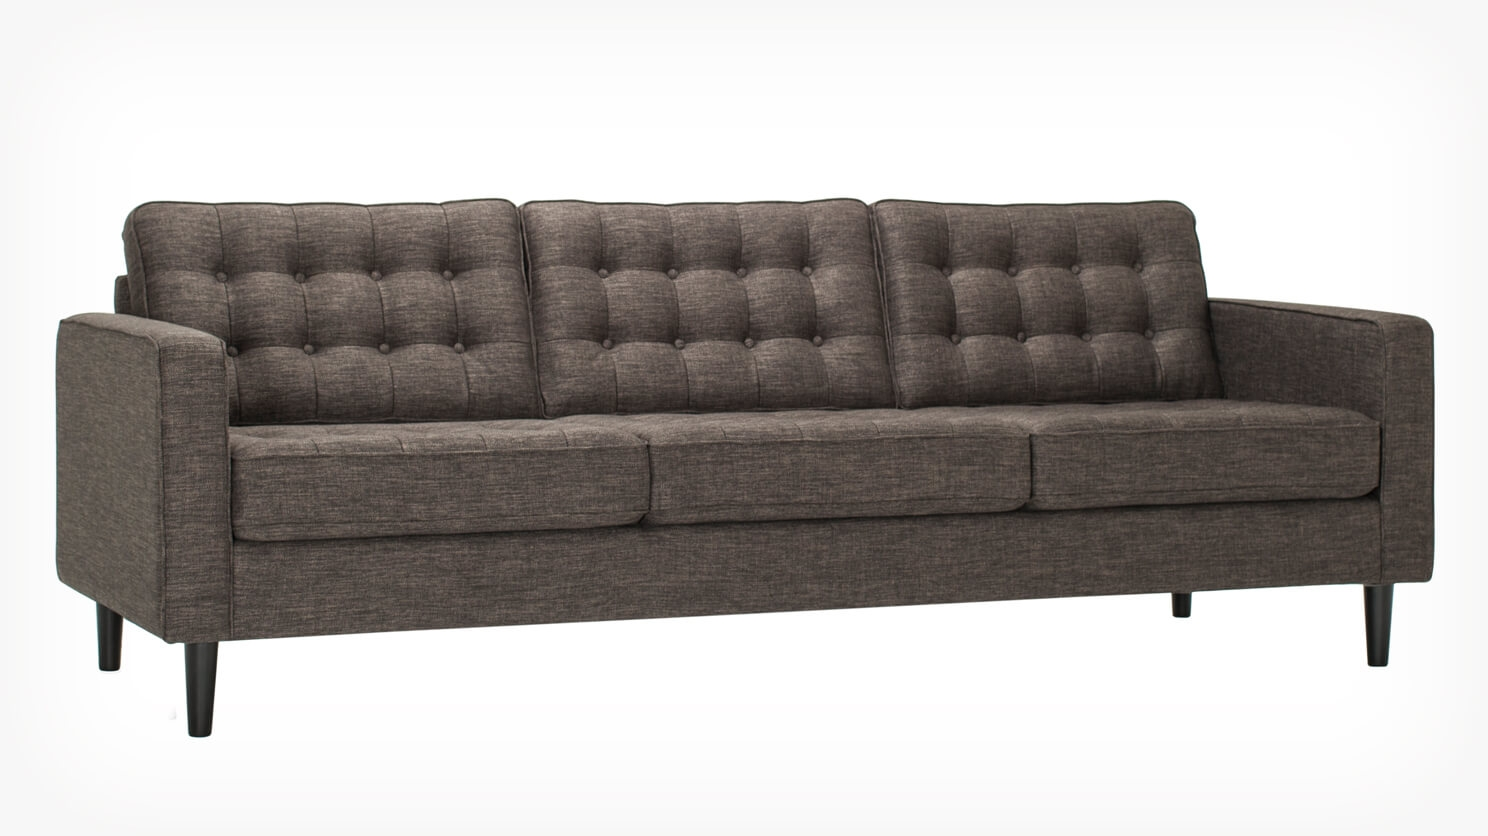 reverie sofa chesterfield ashley furniture 92 quot fabric eq3